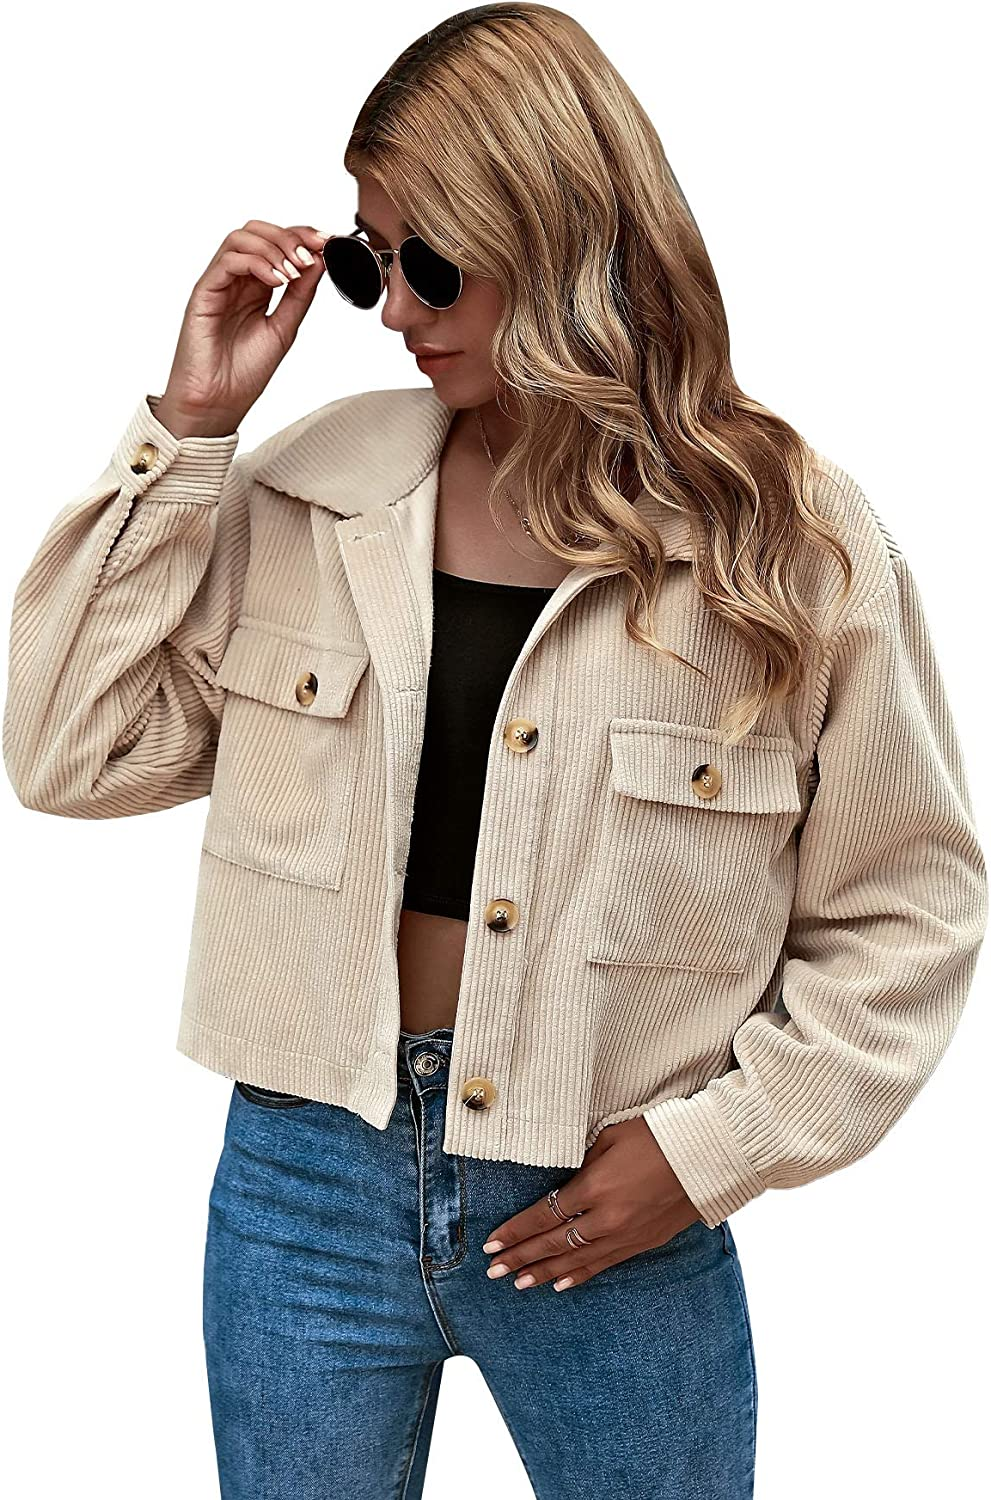 Milumia Women Casual Button Front Jacket Drop Shoulder Collared Plain Outwear with Flap Pockets